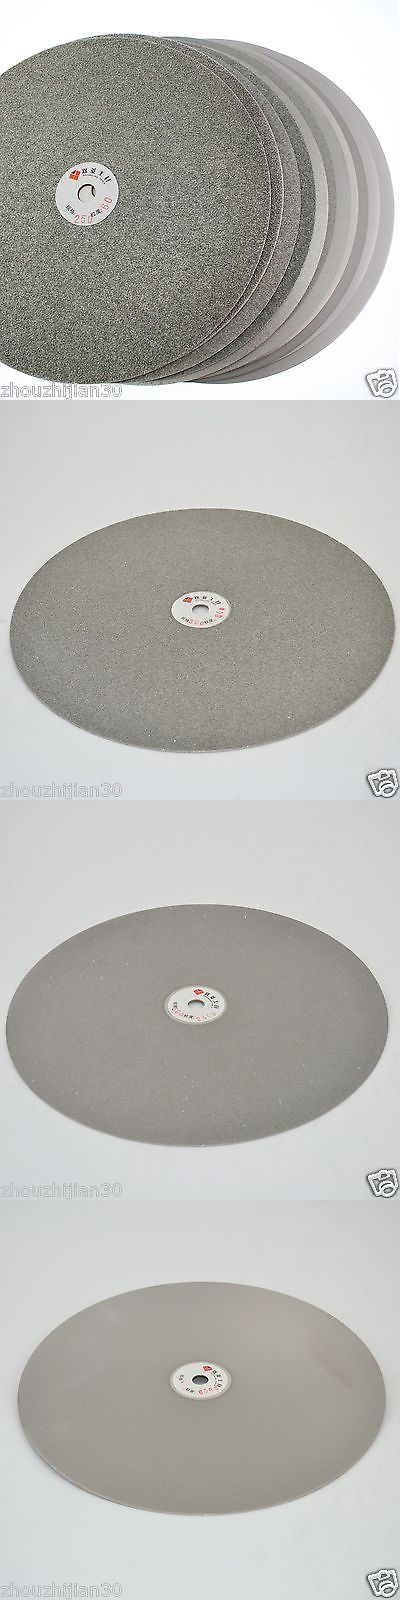 Glass Grinding 116644: 3Pcs 14 Inch Grit 80 240 600 Diamond Coated Flat Lap Disk Grinding Polish Wheel -> BUY IT NOW ONLY: $206.99 on eBay!